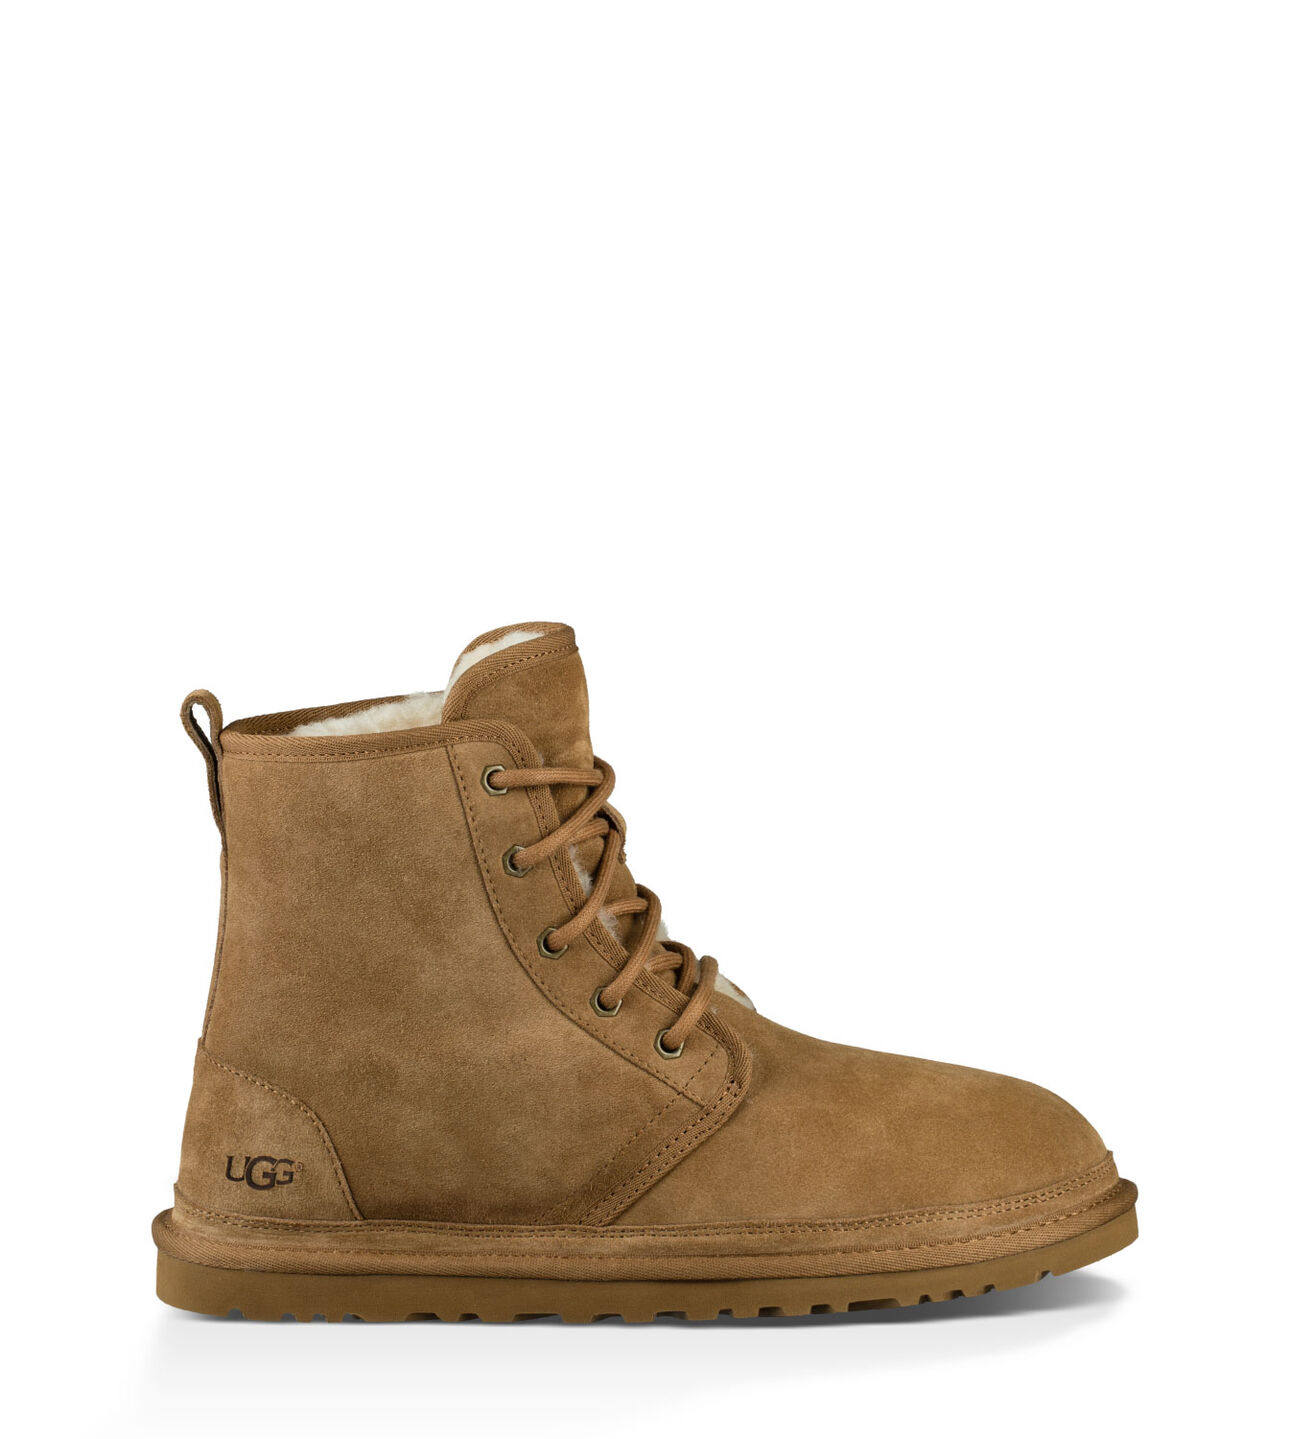 c11be82586c Men's Large Sizes | Shoes, Boots, Sandals, Slippers | UGG® Official